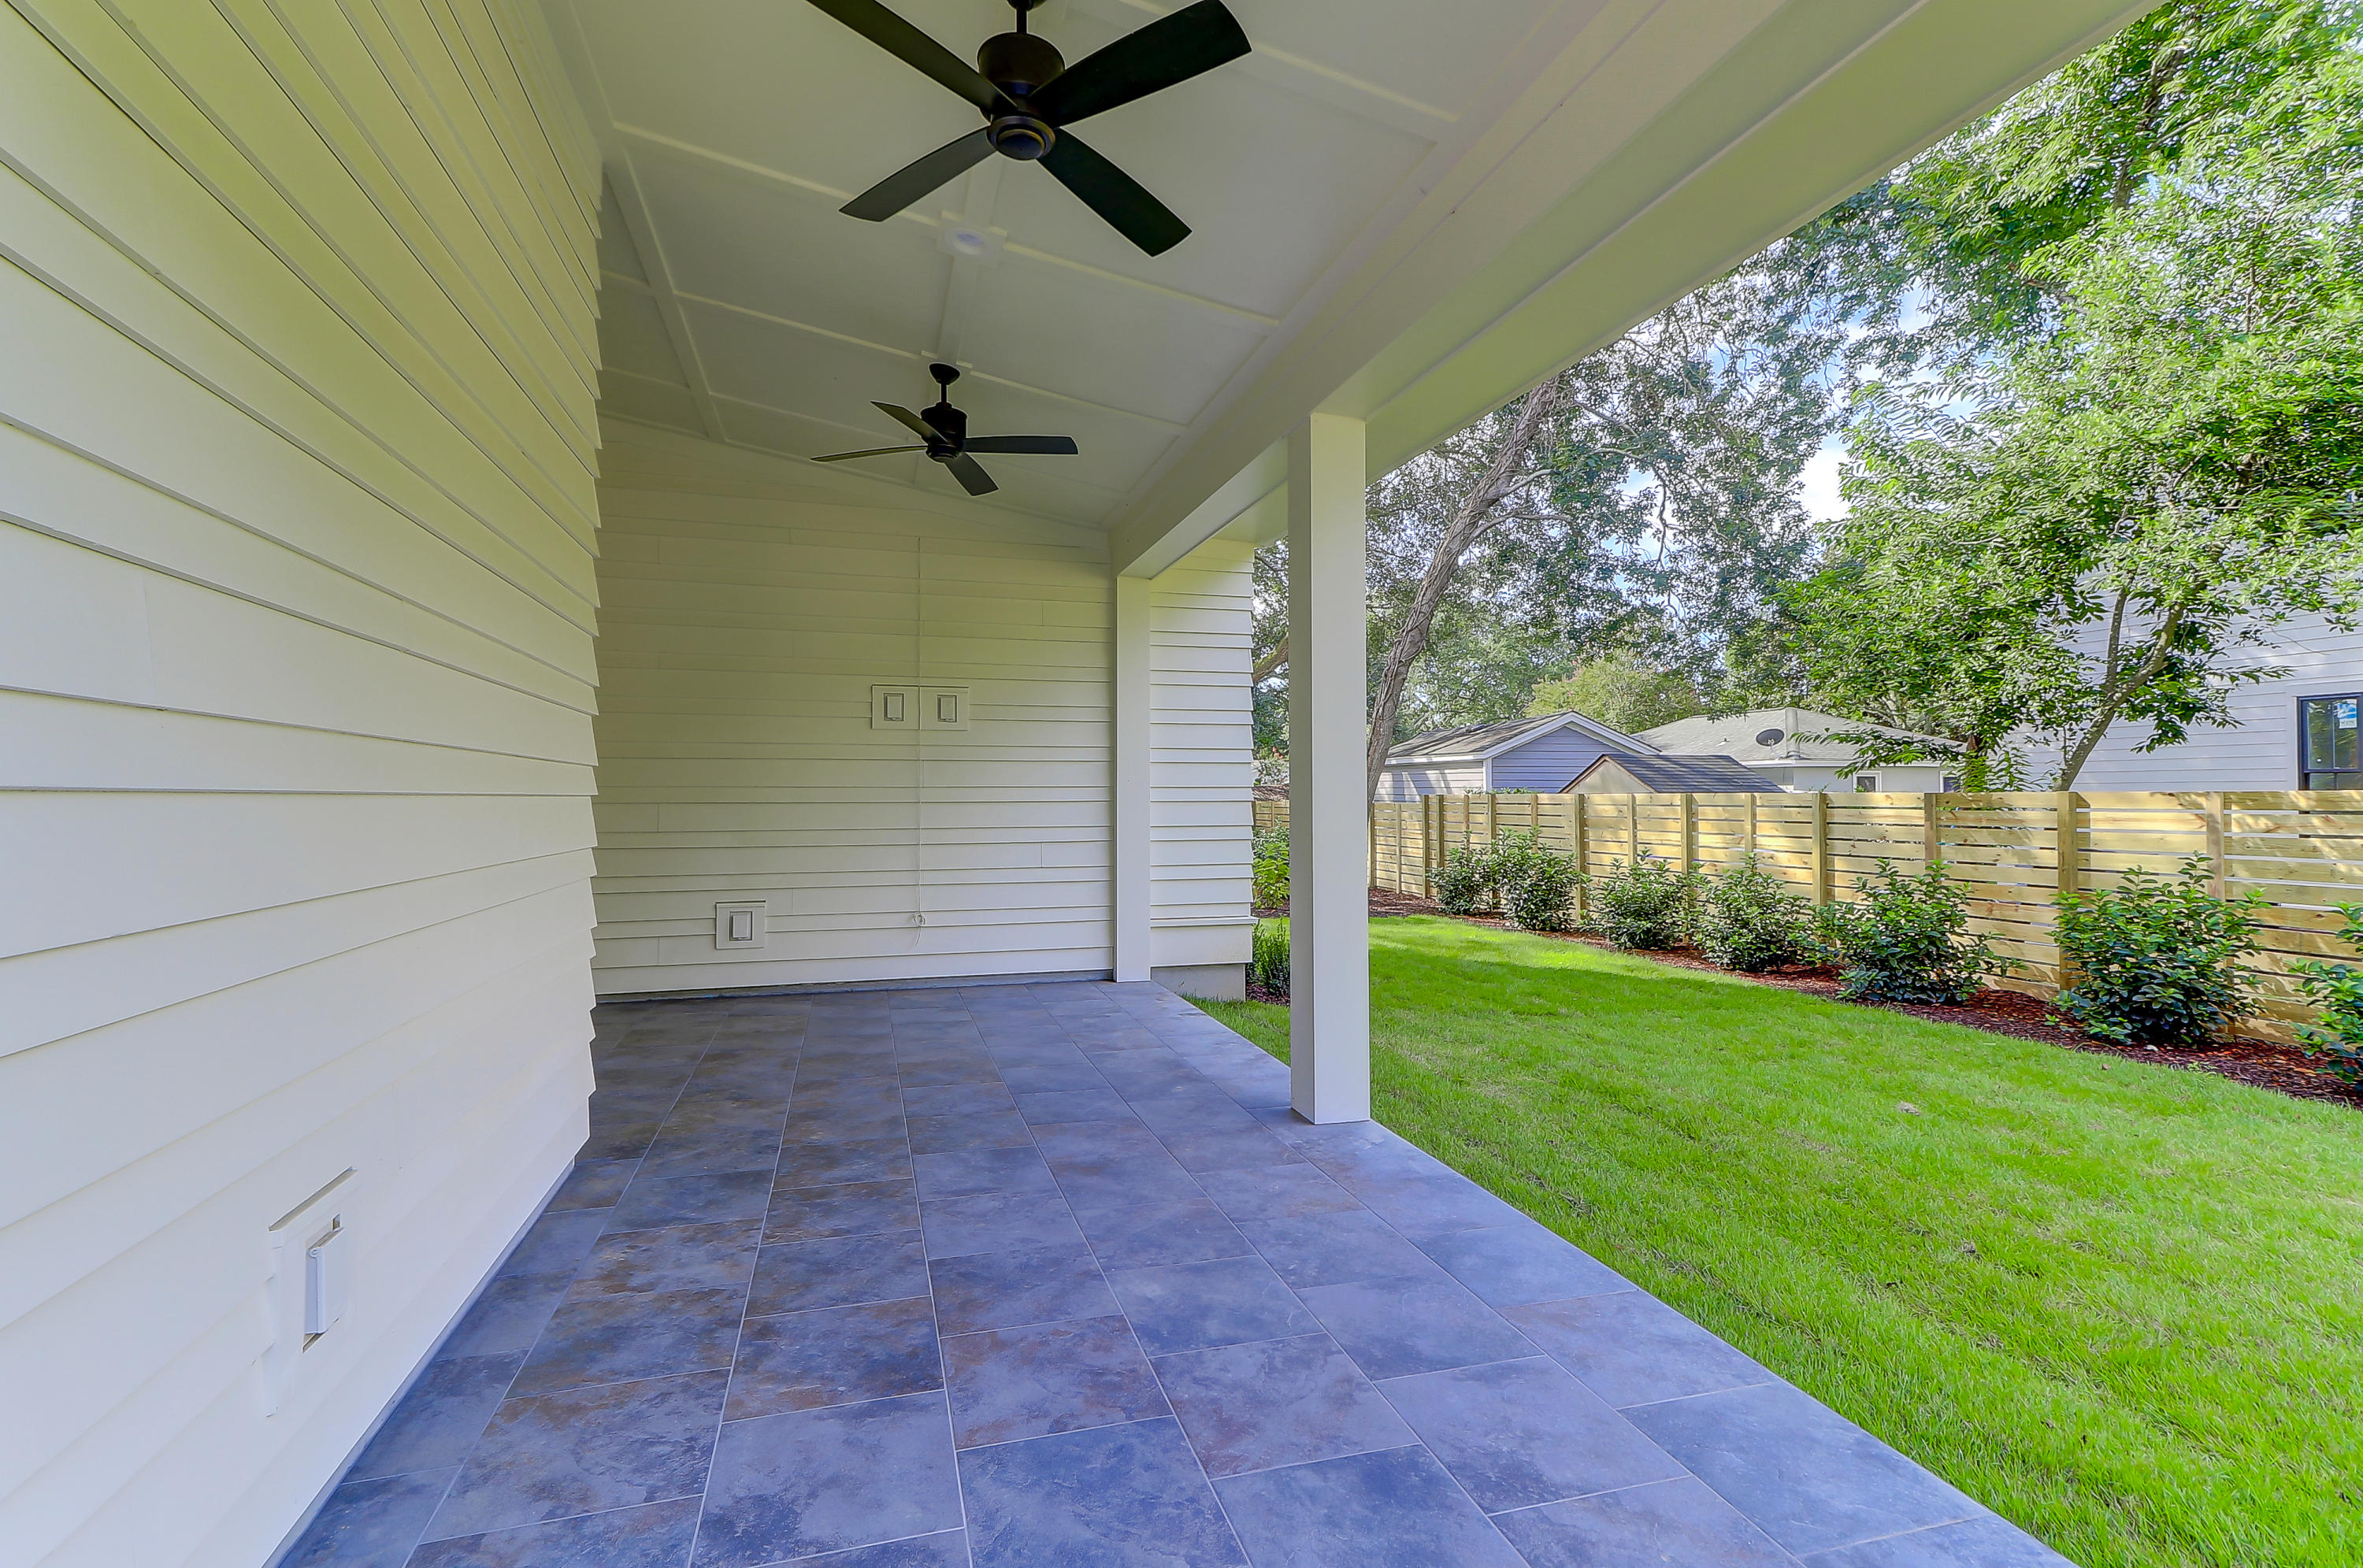 Old Mt Pleasant Homes For Sale - 1401 Mataoka, Mount Pleasant, SC - 24